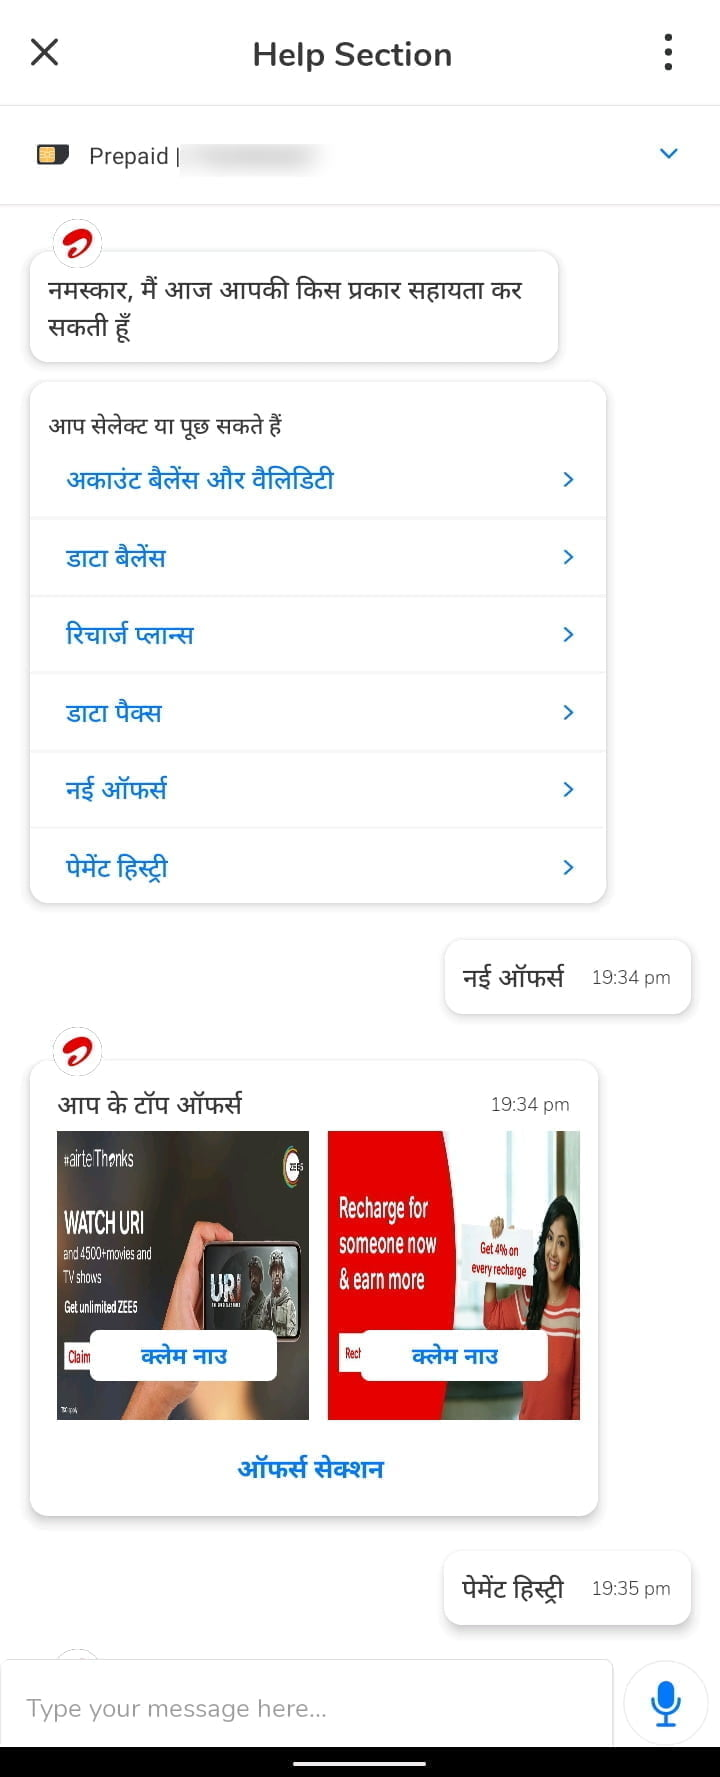 Airtel customers can now use AI-based assistant on Airtel Thanks app to get account details and latest offers